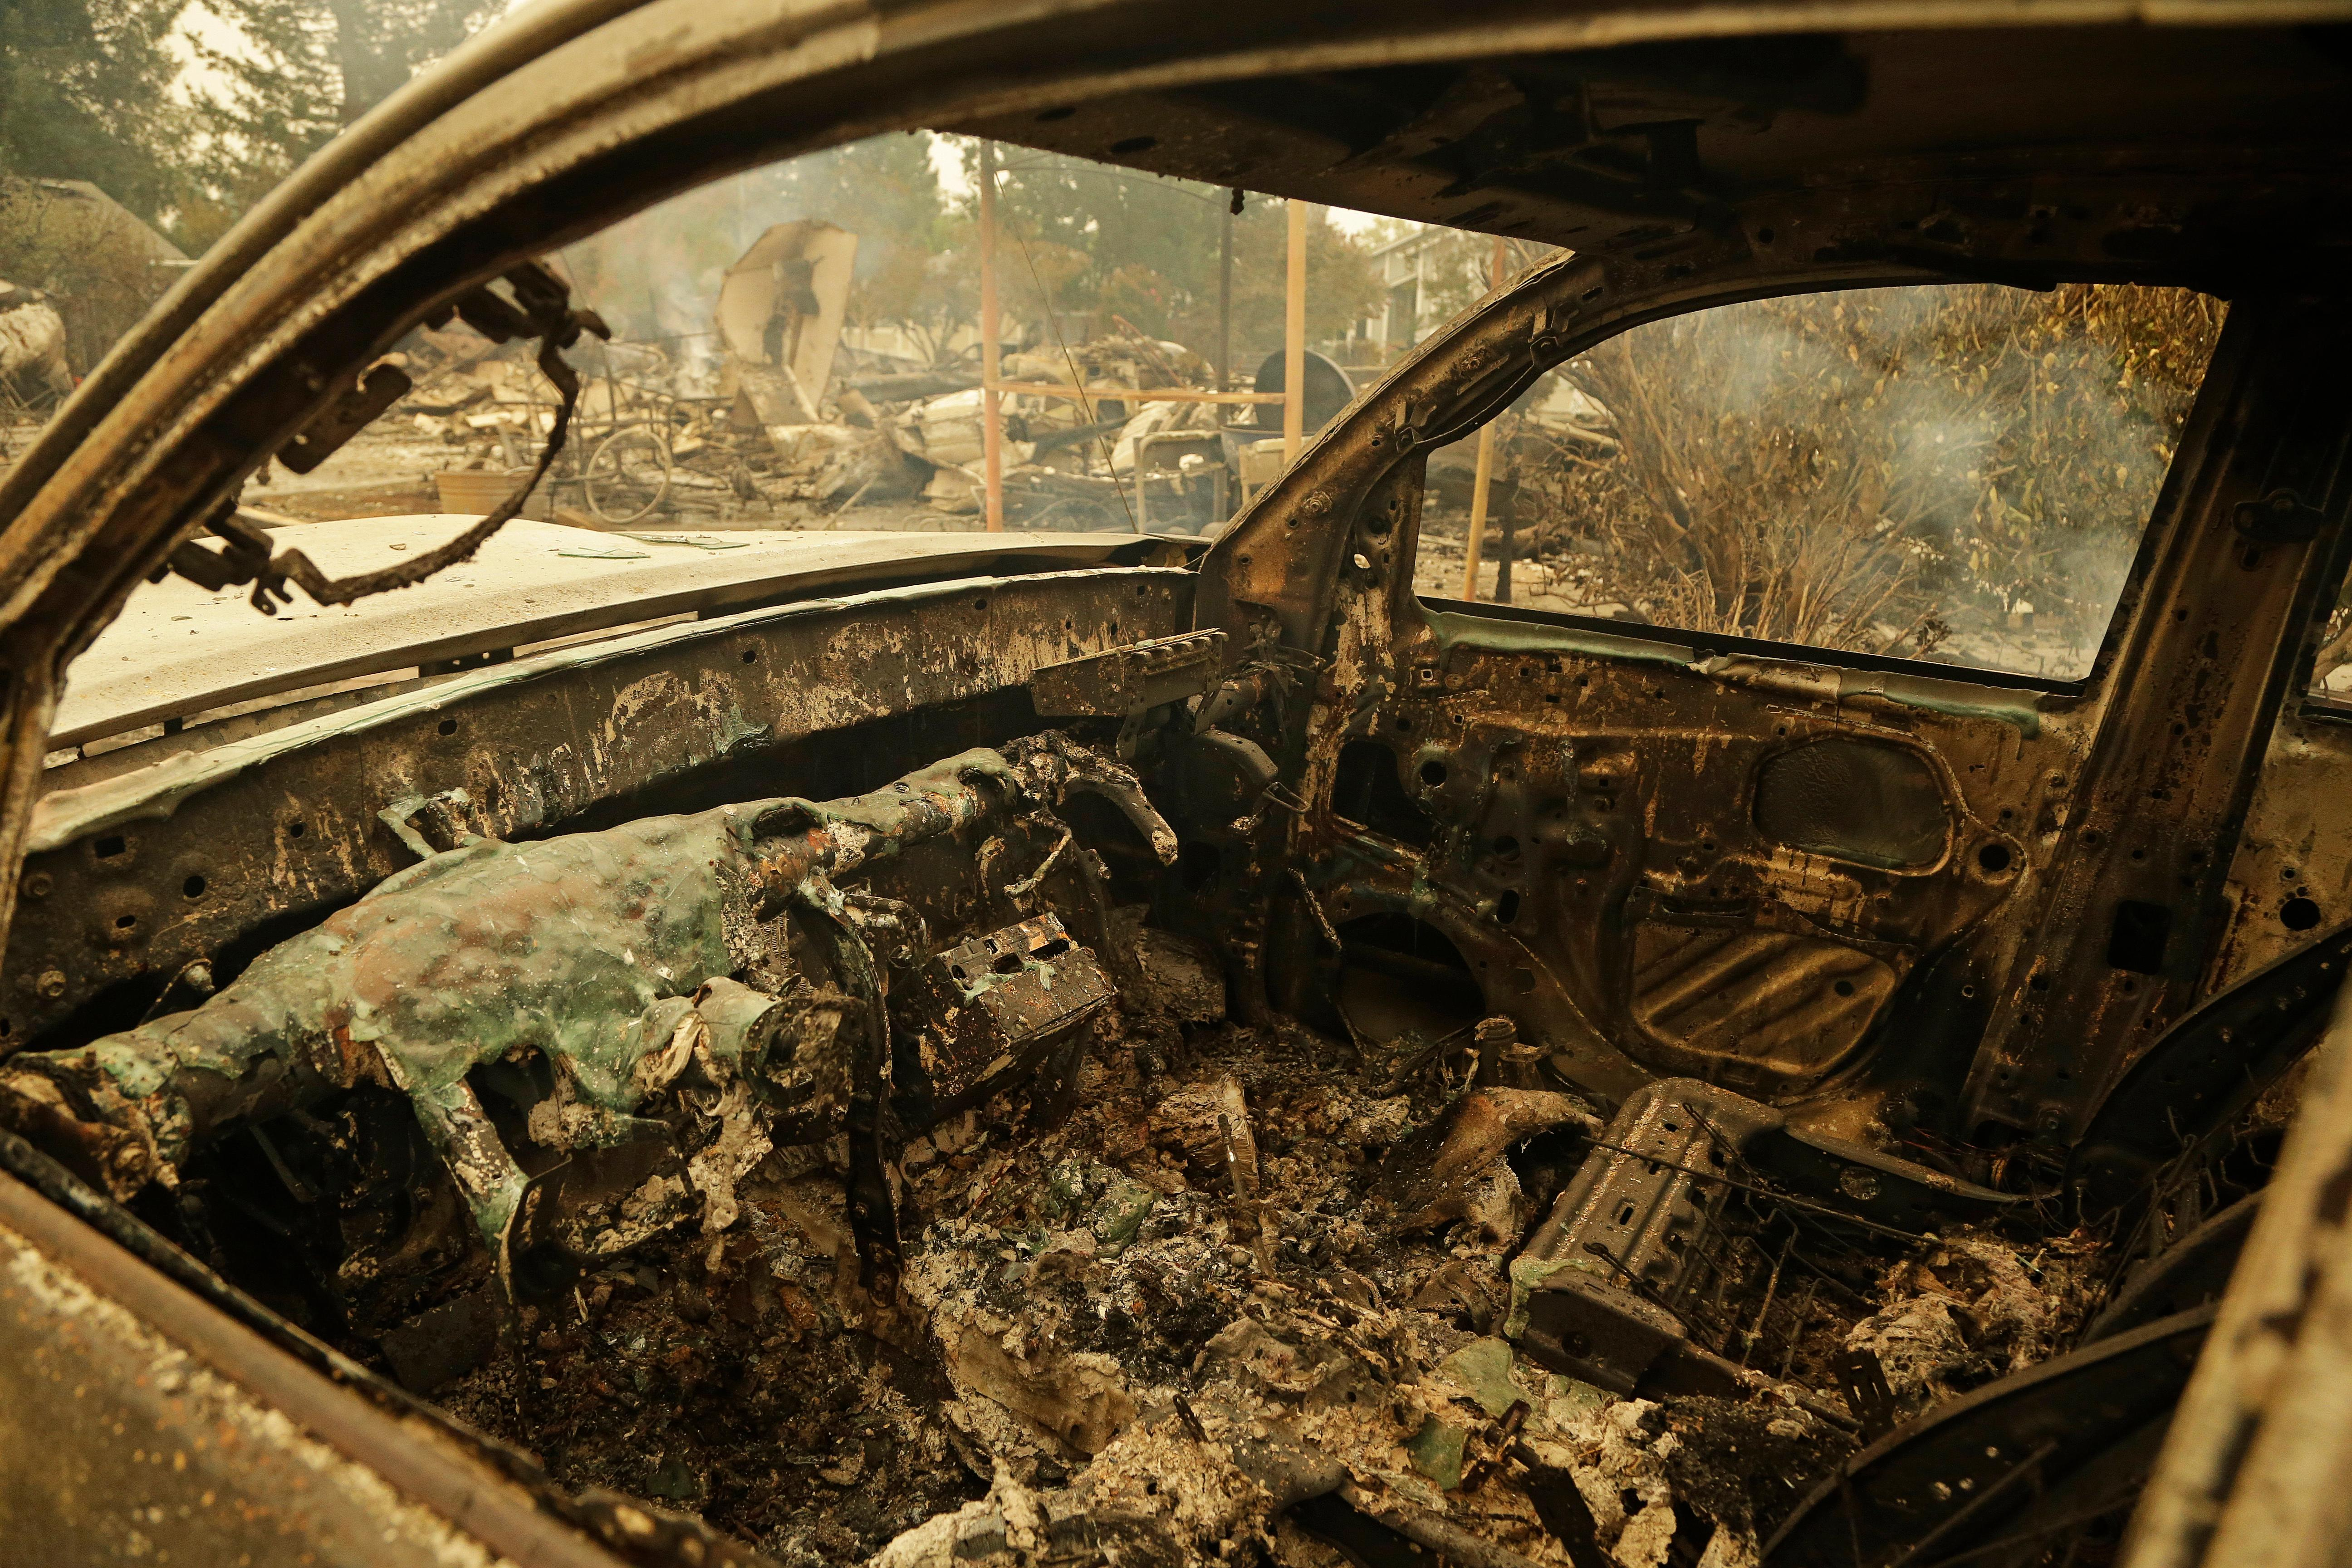 The remains of an automobile sit in the Coffey Park area of Santa Rosa, Calif. An onslaught of wildfires across a wide swath of Northern California broke out almost simultaneously then grew exponentially, swallowing up properties from wineries to trailer parks and tearing through both tiny rural towns and urban subdivisions. (AP Photo/Ben Margot)